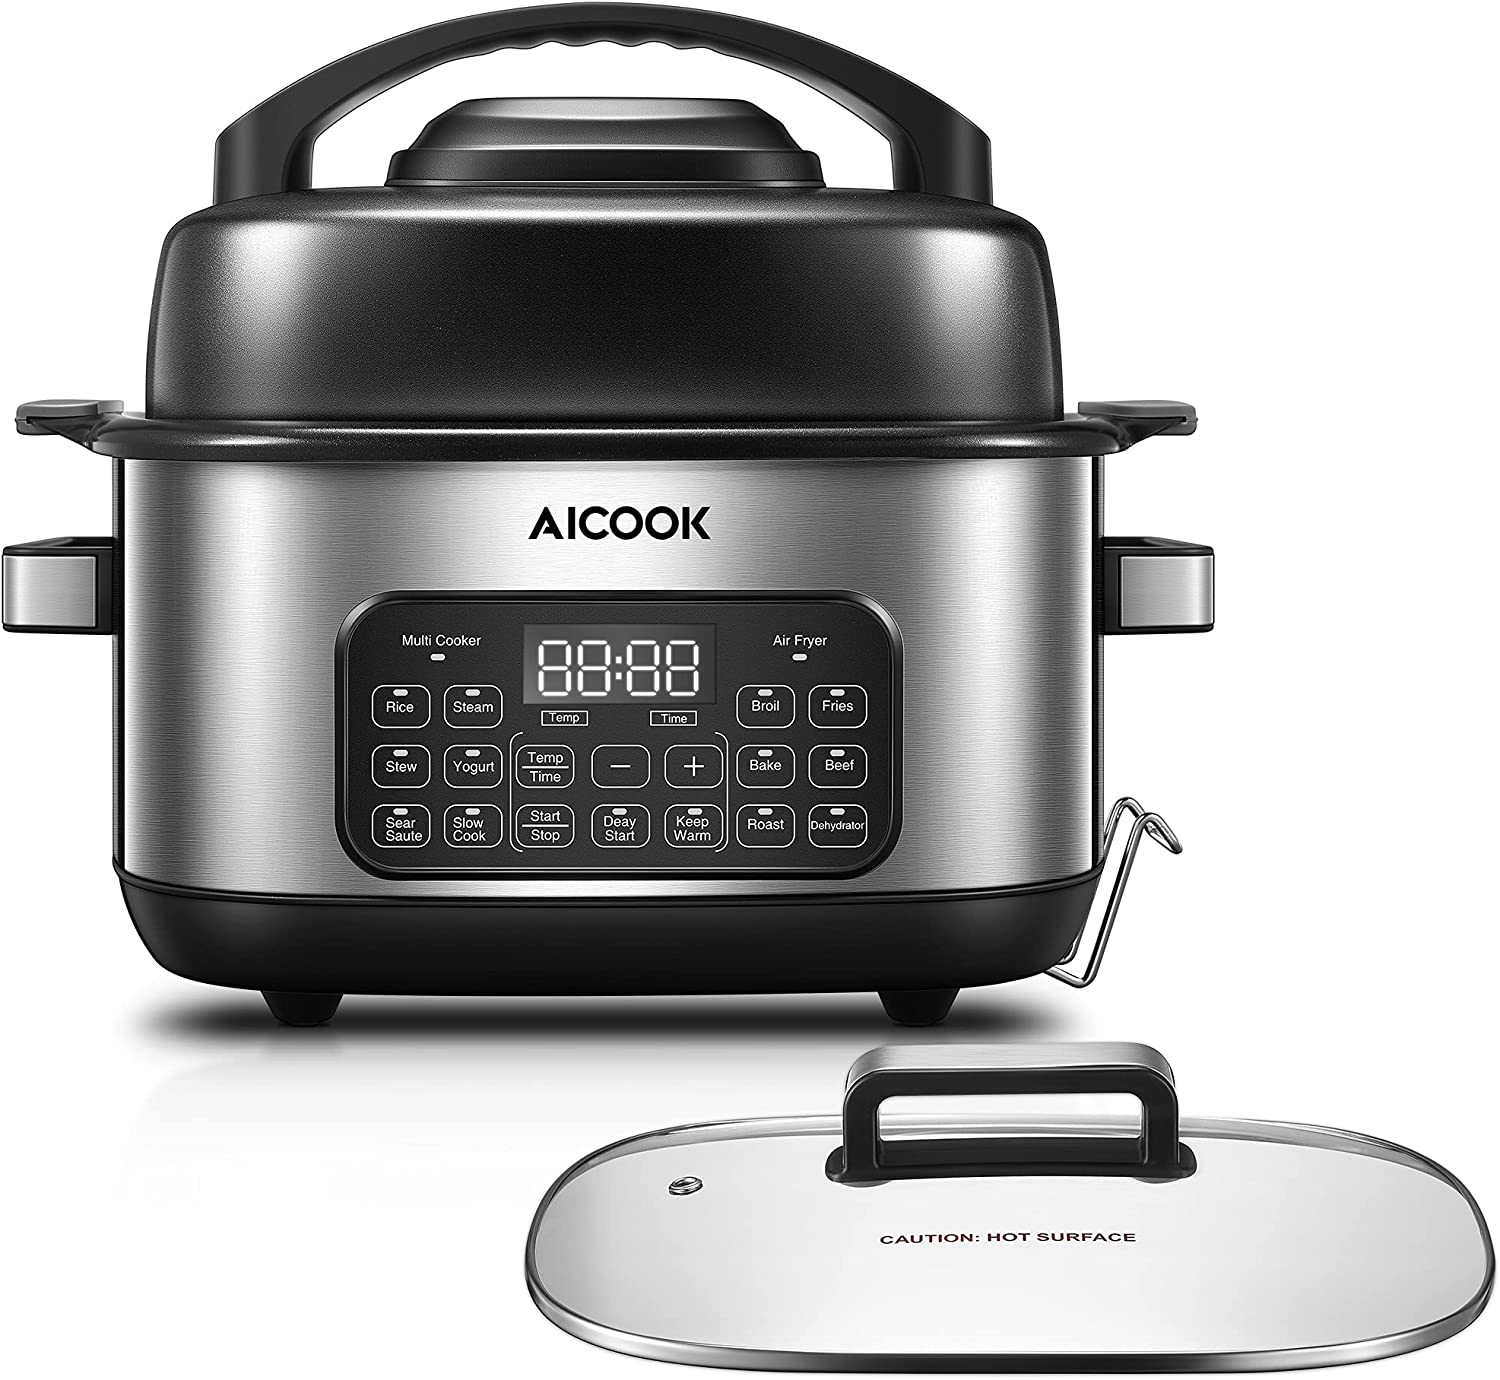 Slow Cooker Air Fryer Combo, AICOOK 12-in-1 Multicooker 6.5 Quart Programmable Rice Cooker Yogurt Maker Steamer Food Warmer Electric Pot with Delay Start, Adjustable Temp & Time, Fry Basket, Glass Lid